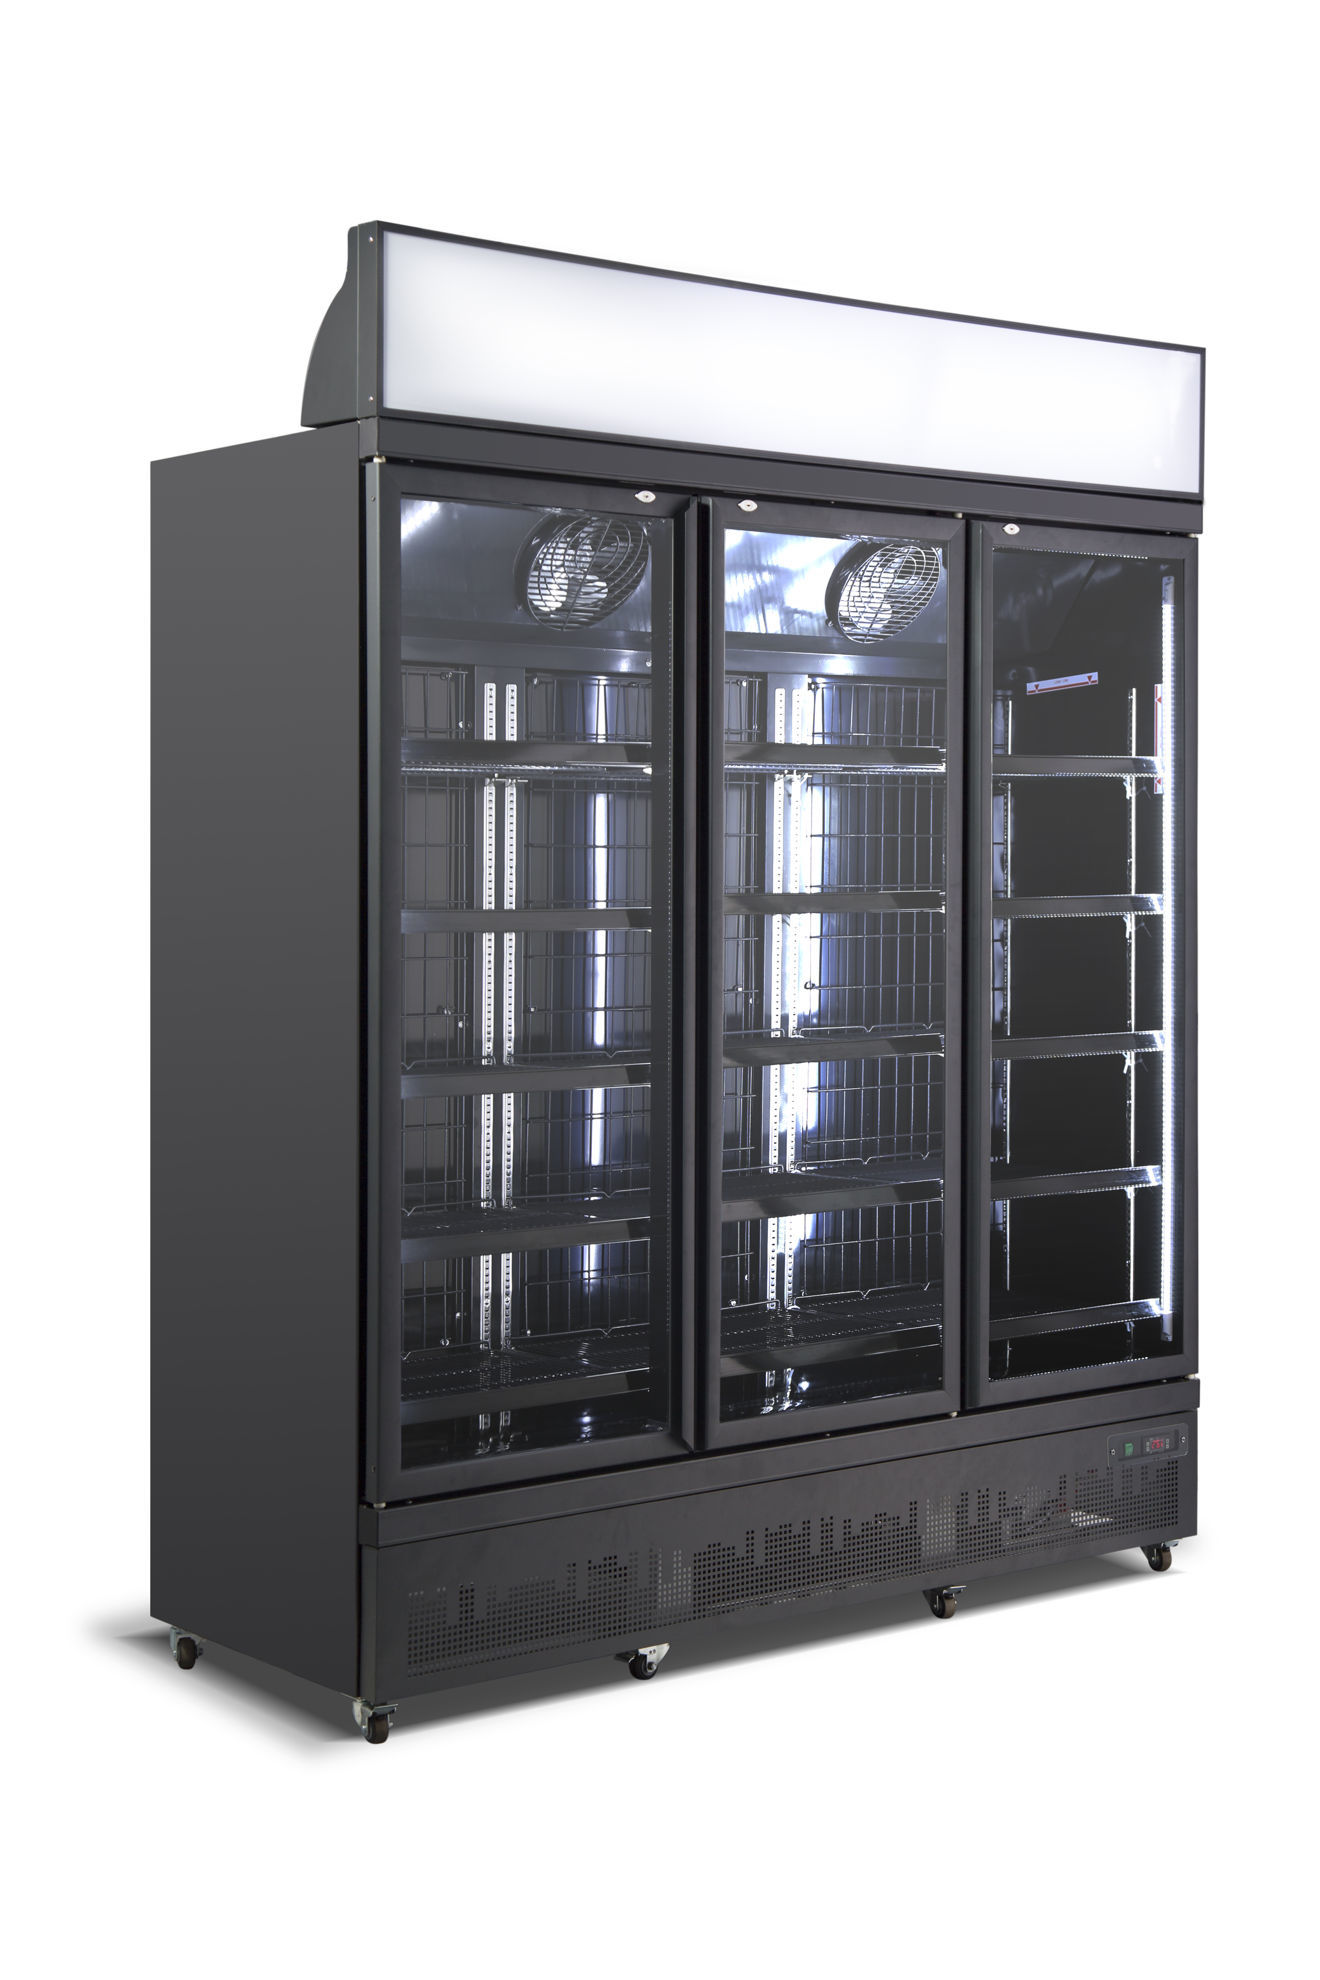 Picture of ICCOLD FD BT188AH Freezer